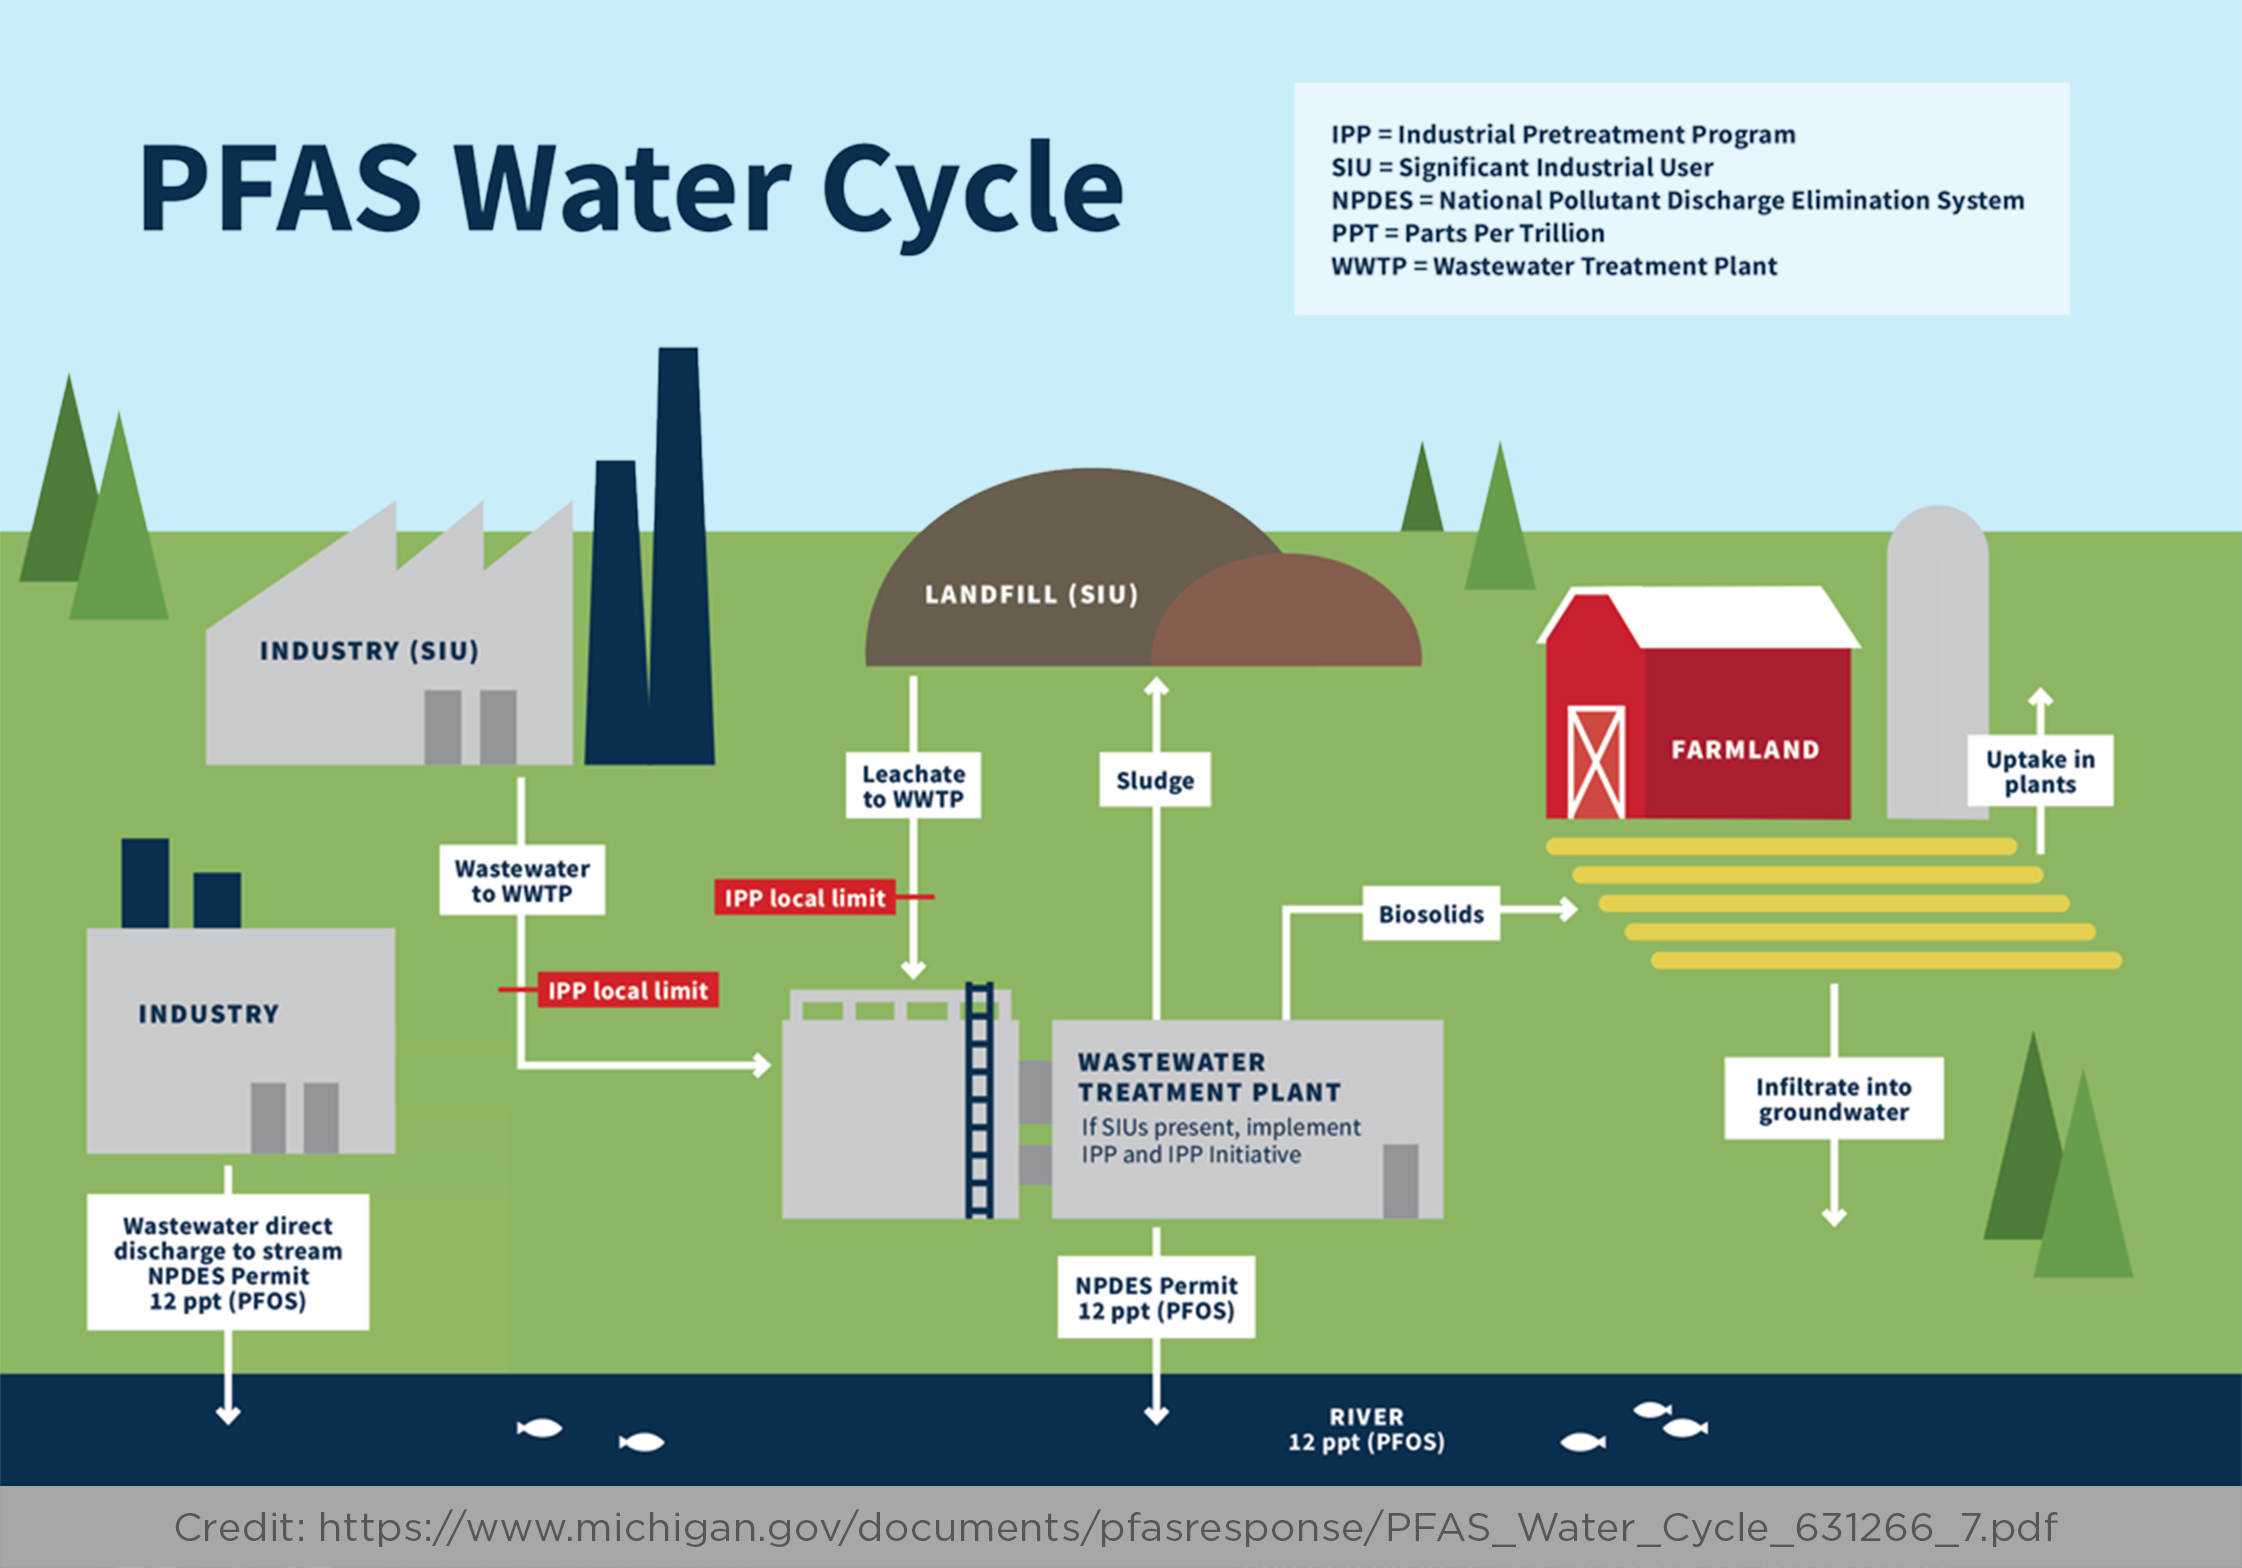 Credited infographic showing PFAS water cycle